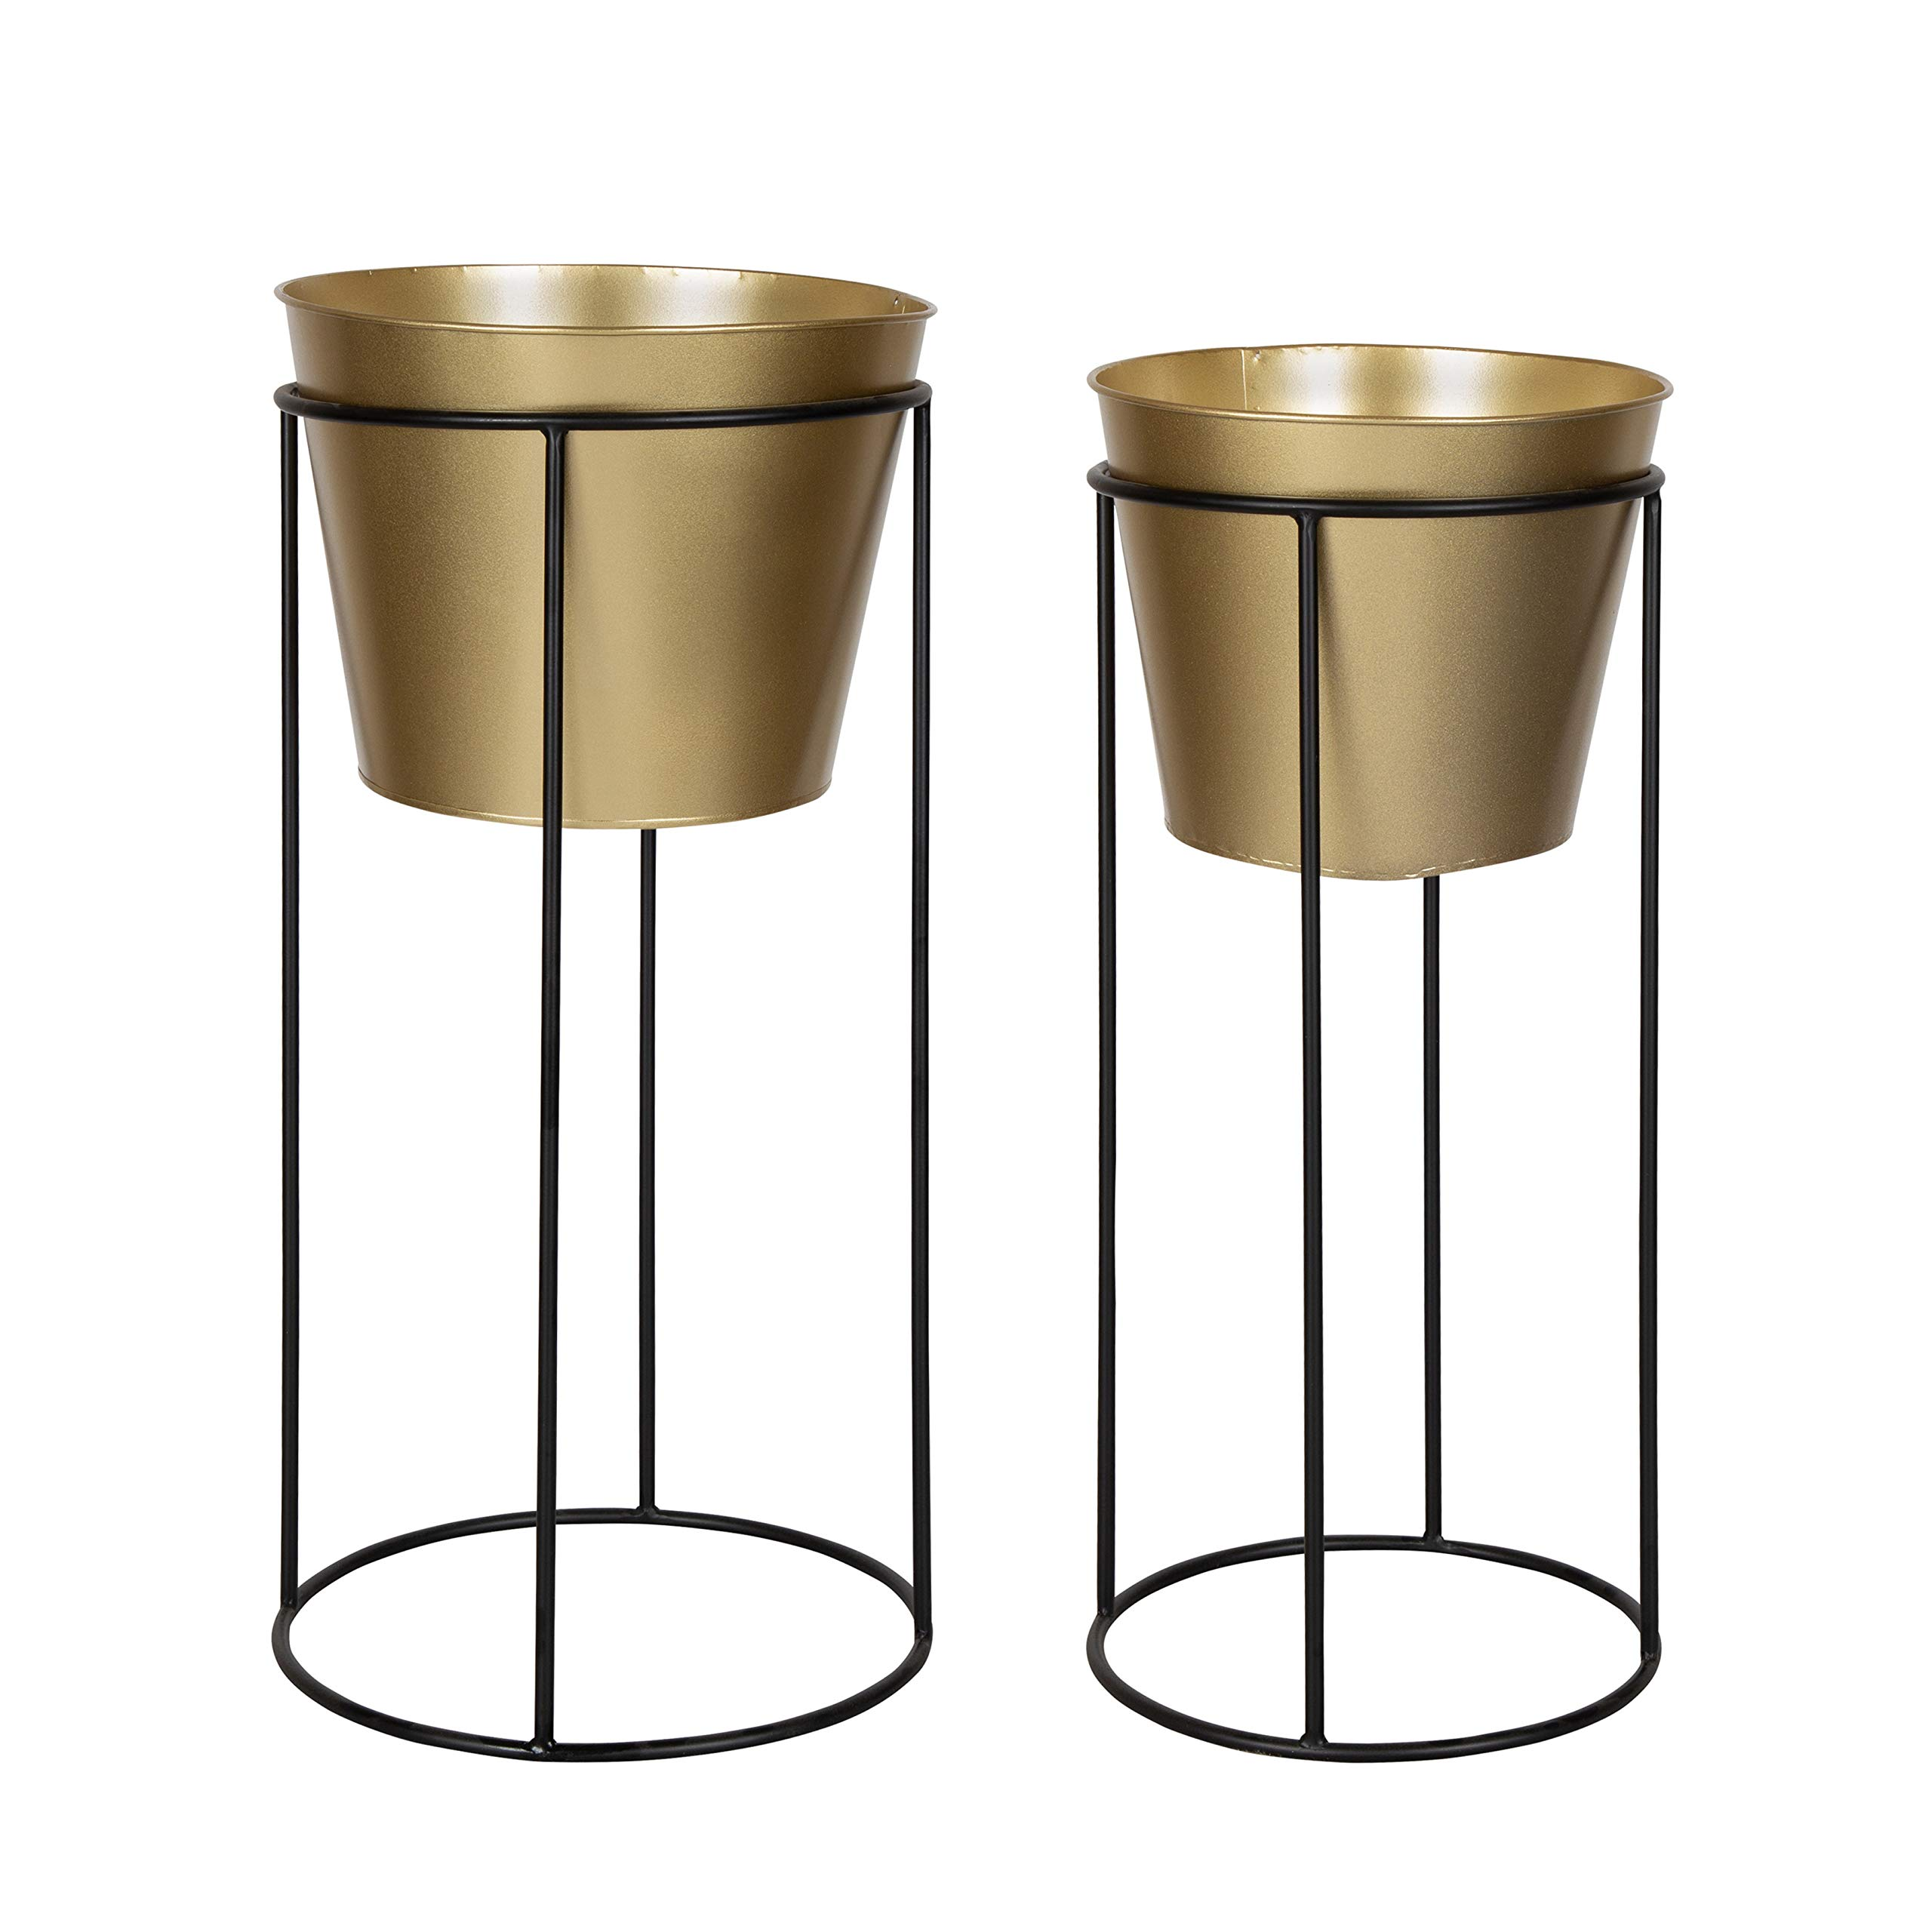 Kate and Laurel Sheely Decorative Modern Metal Planter Stands with Removeable Buckets Style Pots, Set of 2, Gold/Black